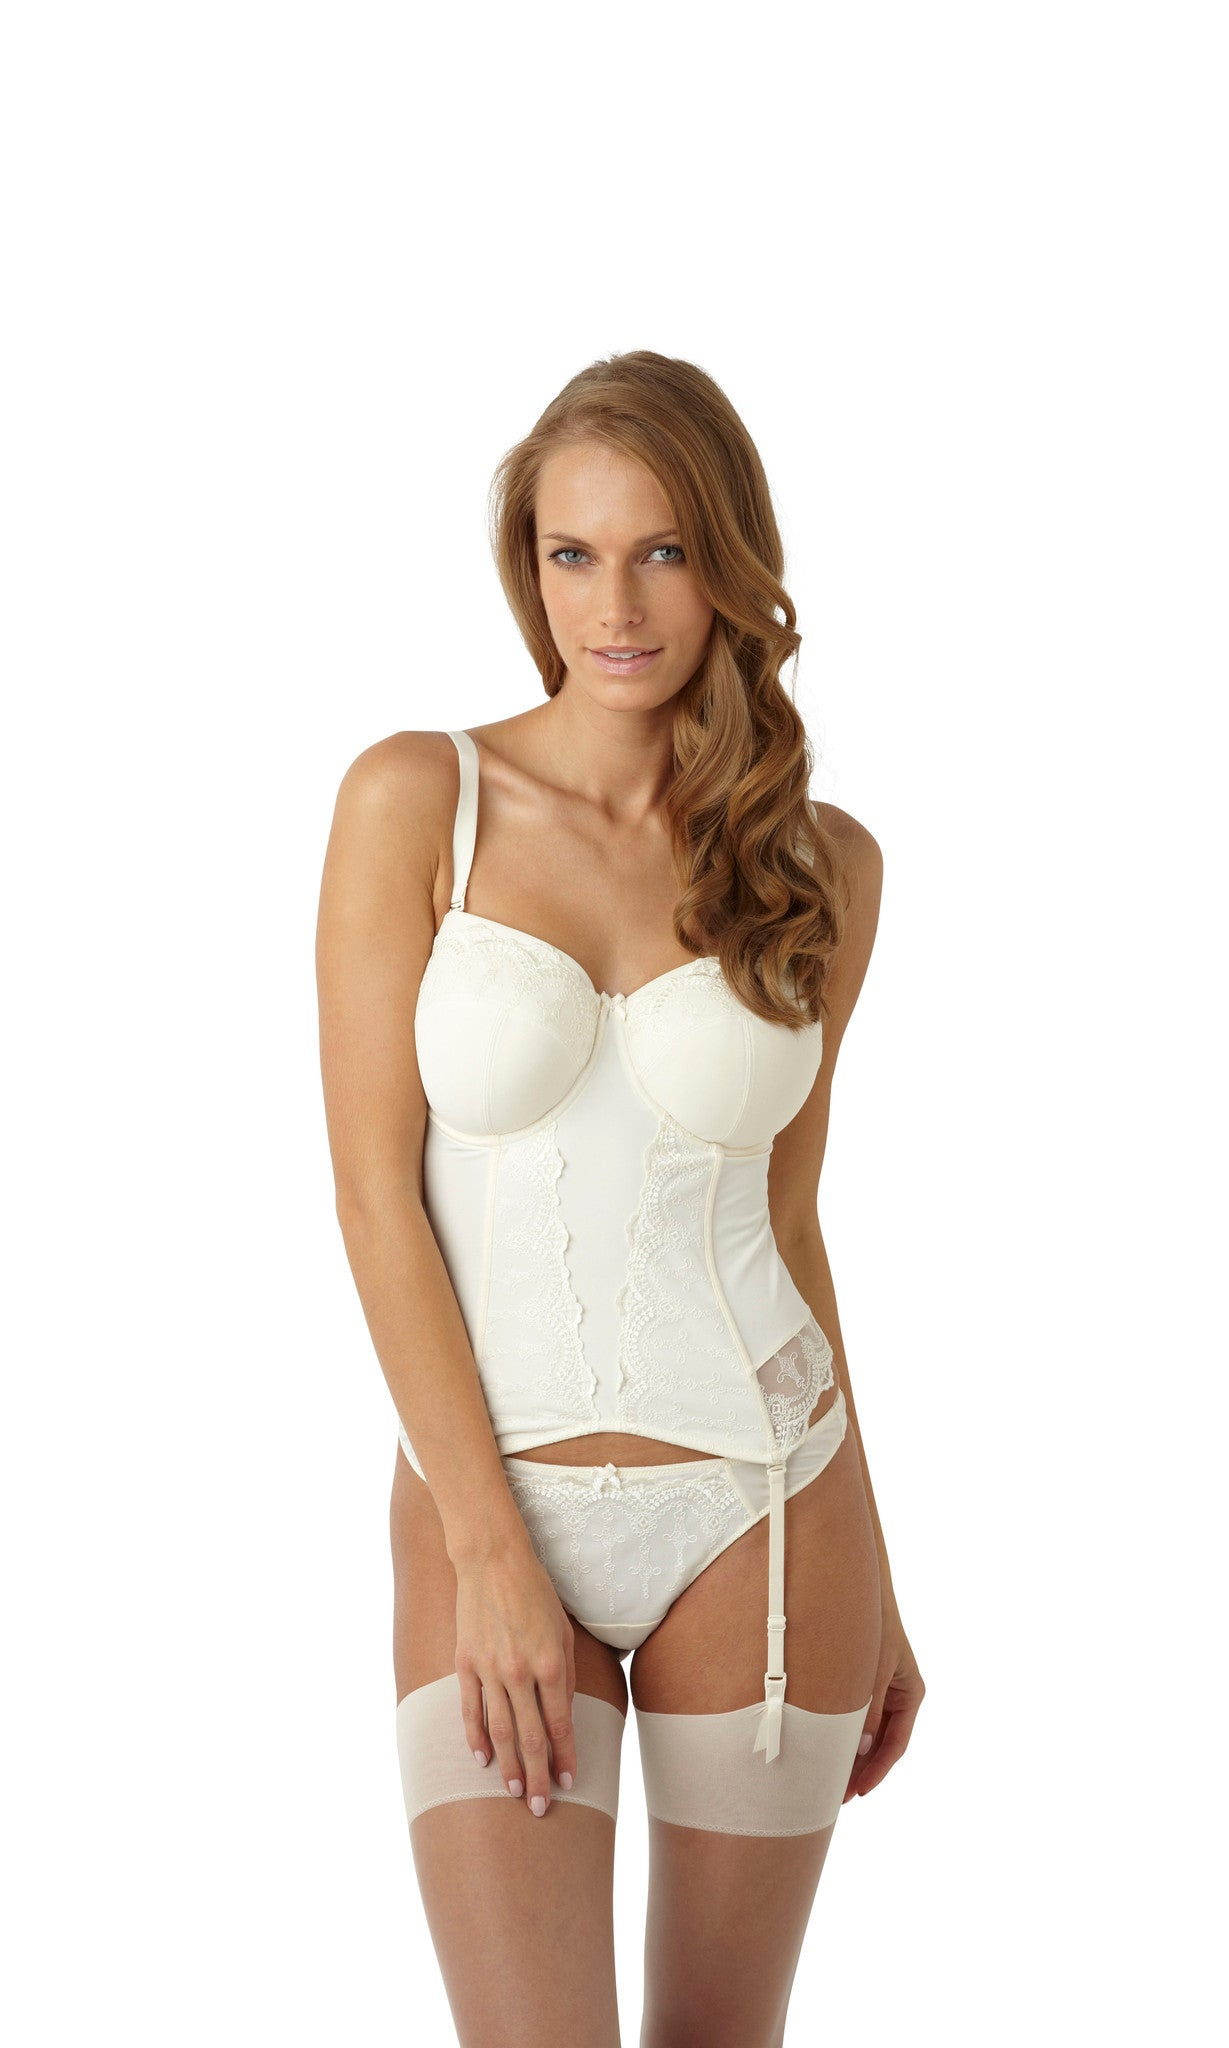 0719f7ef8 Panache-Lingerie-Evie-Bridal-Basque-Ivory-6117-Thong-